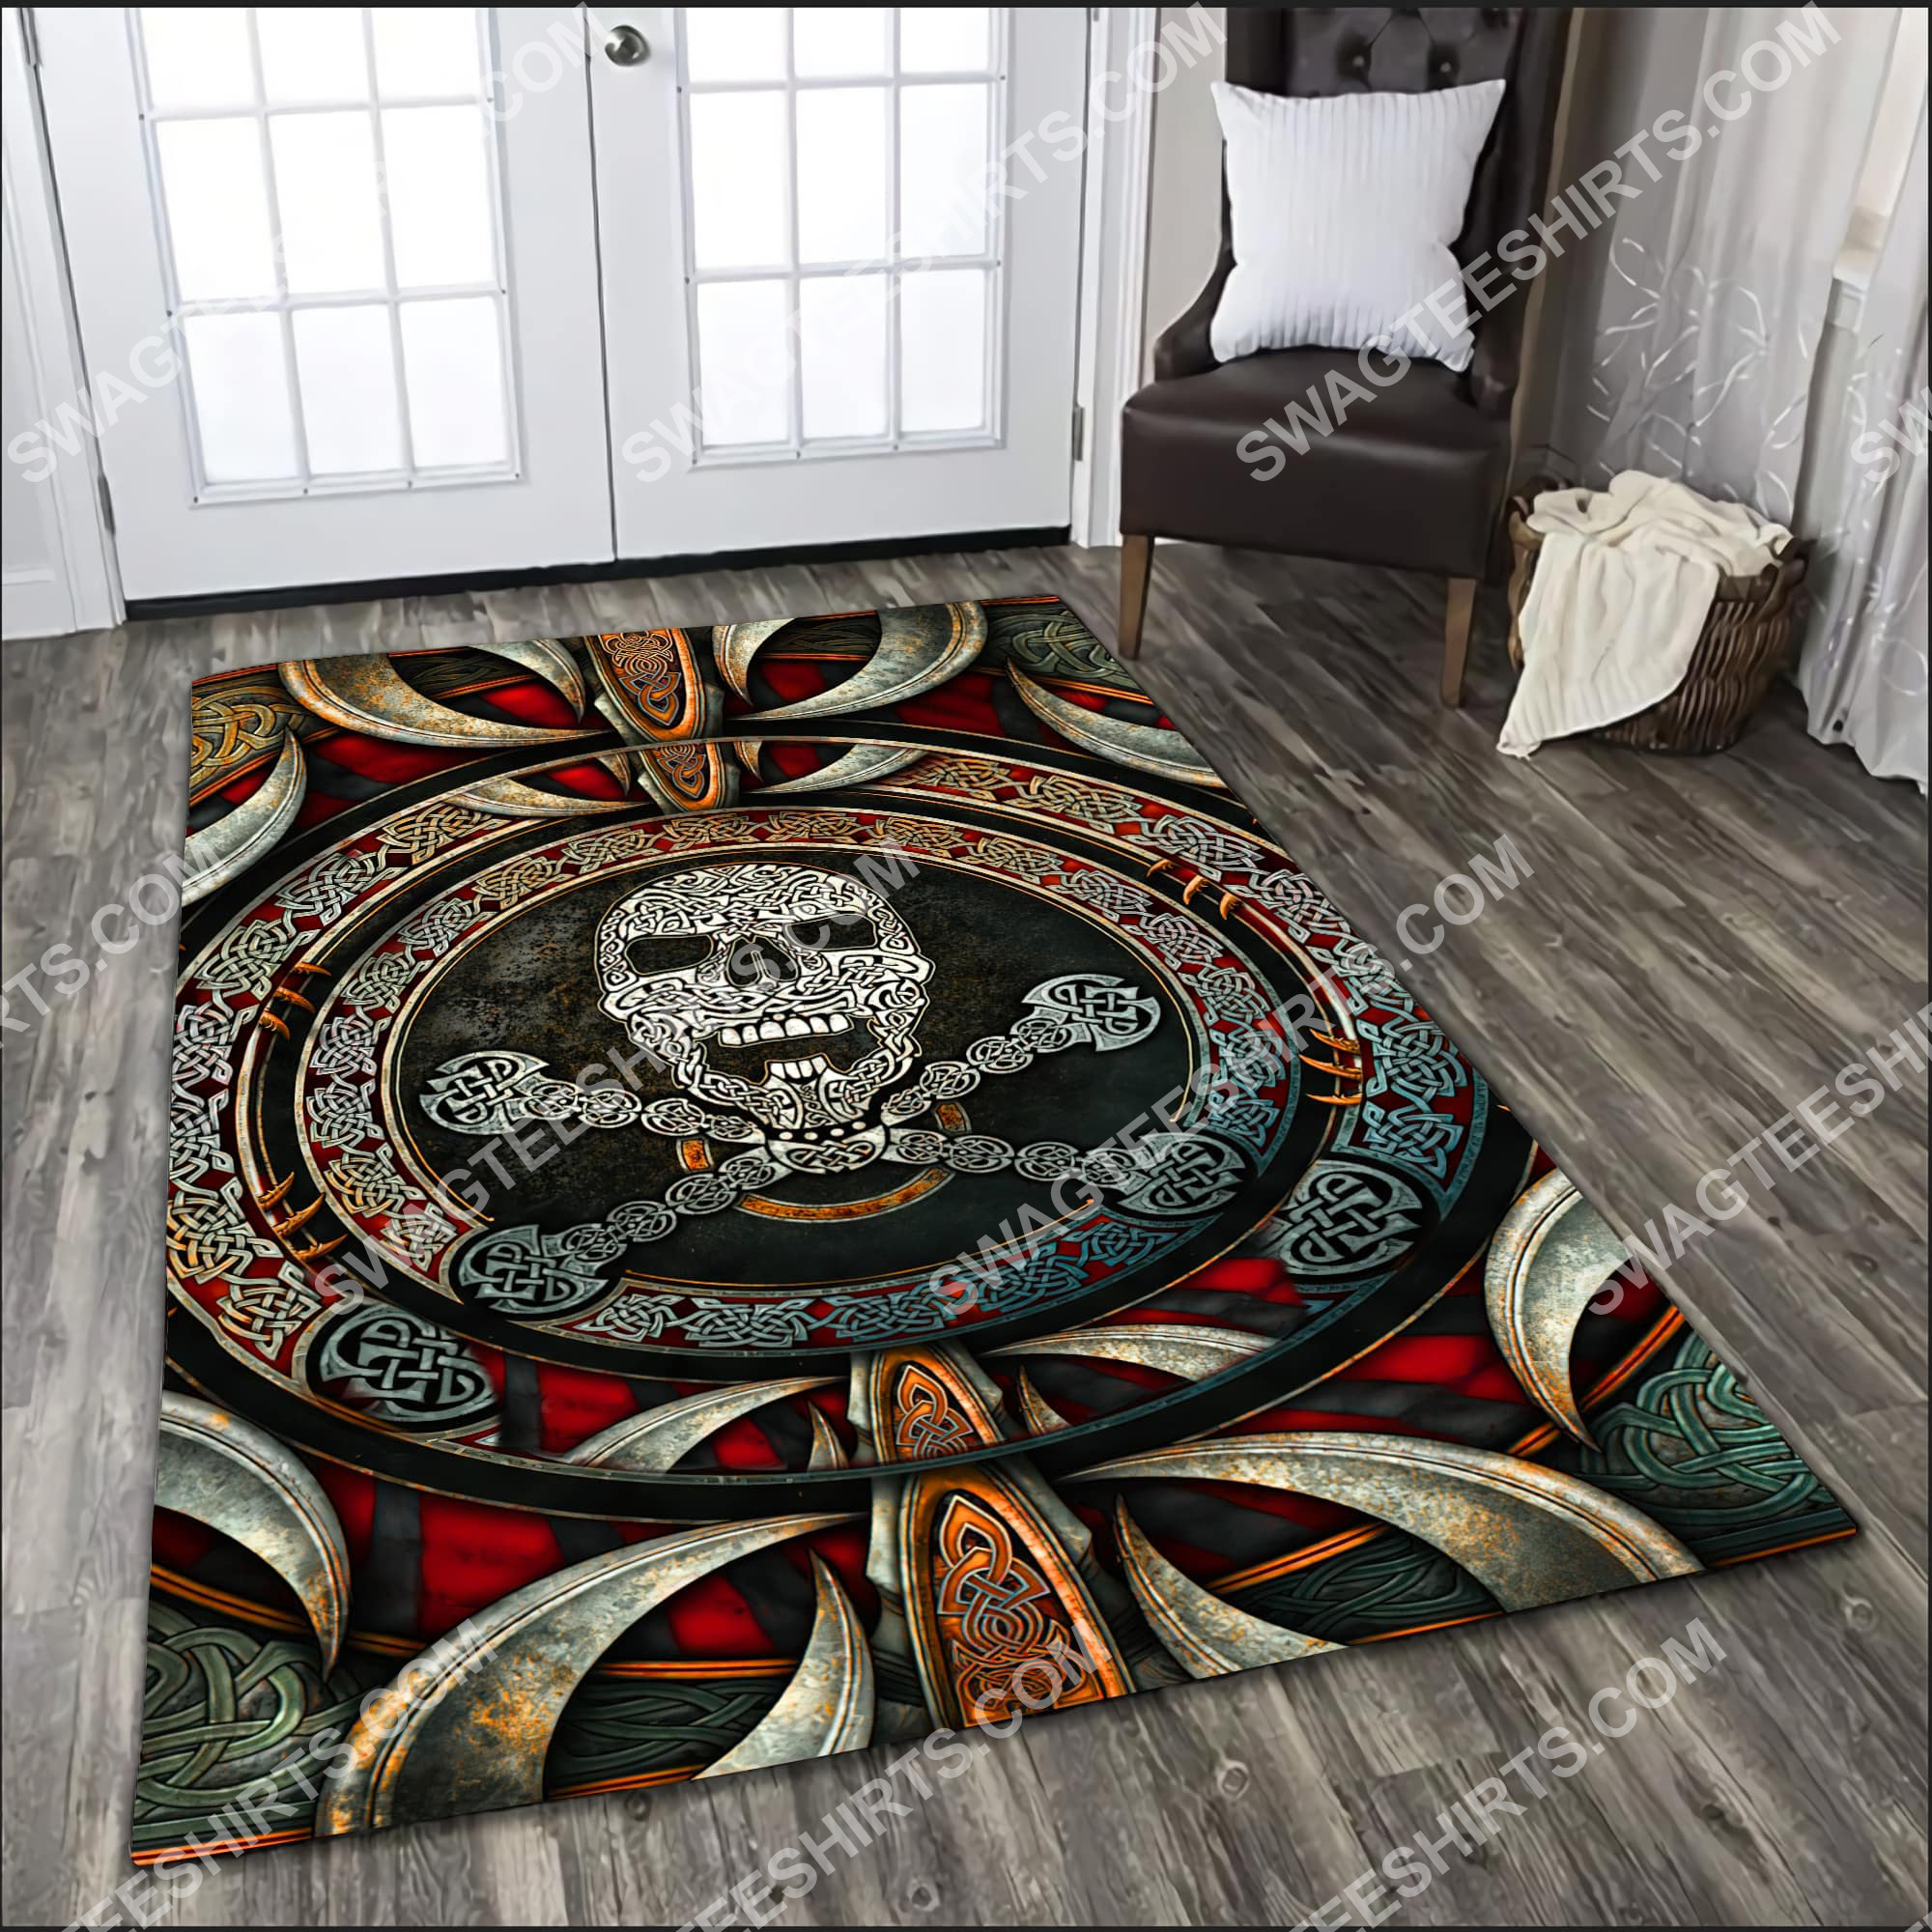 the viking skull all over printed rug 2(1)